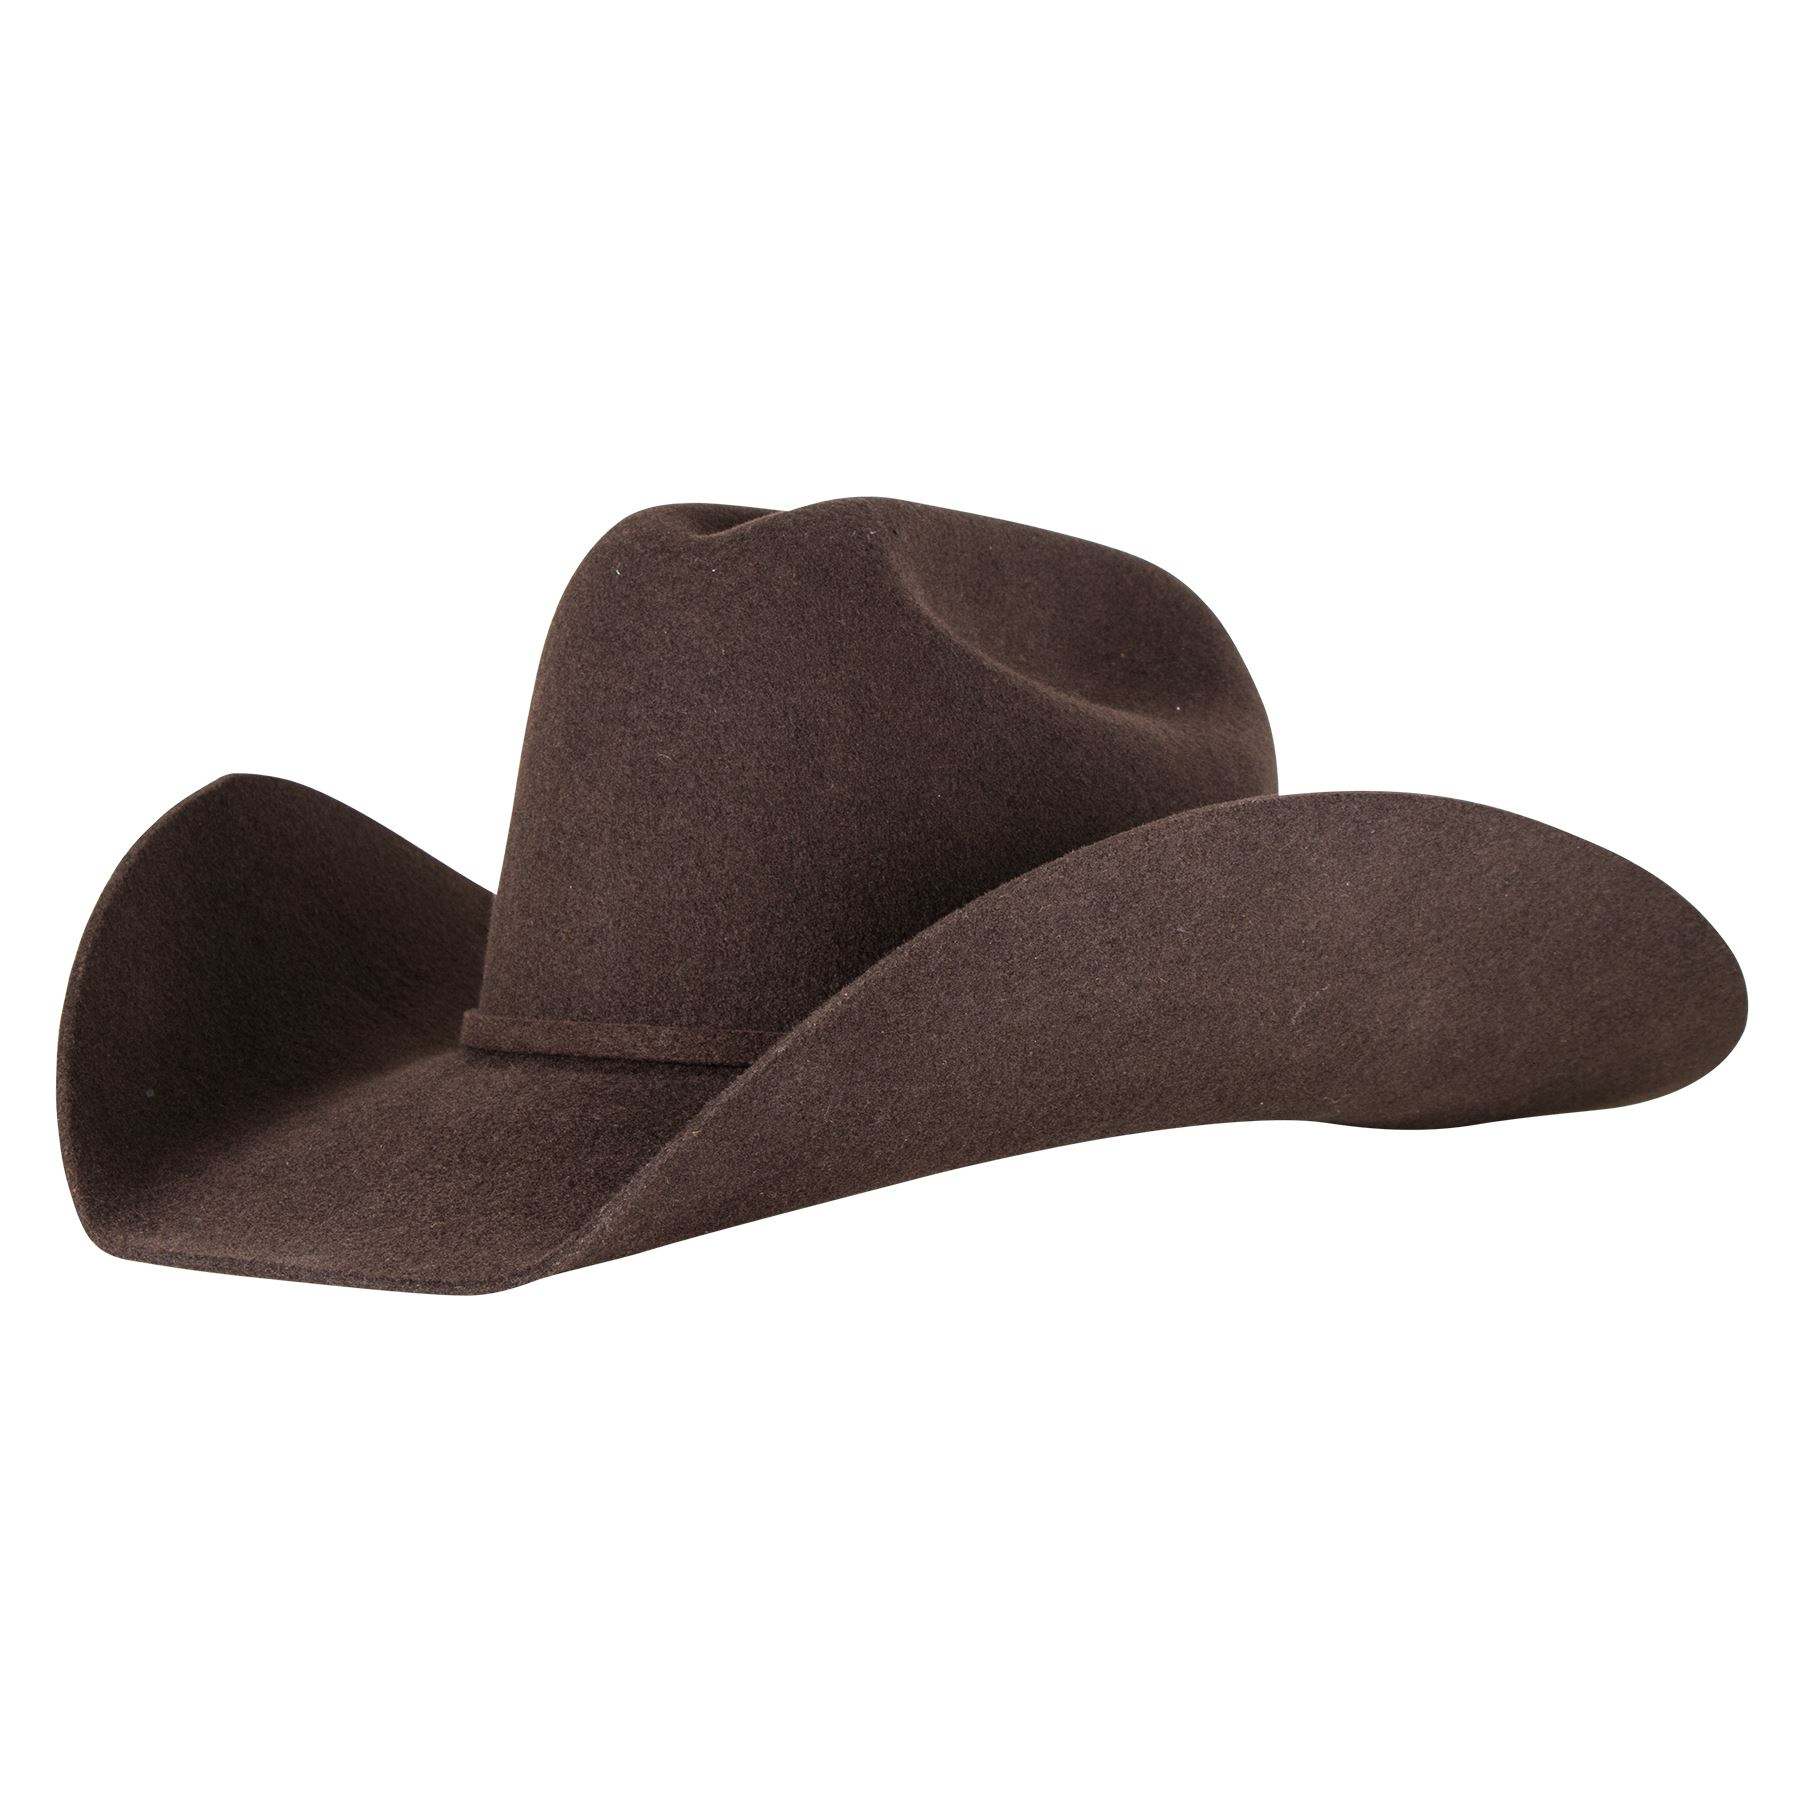 Schneiders Low Rider 3X Felt Cowboy Hat - Chocolate